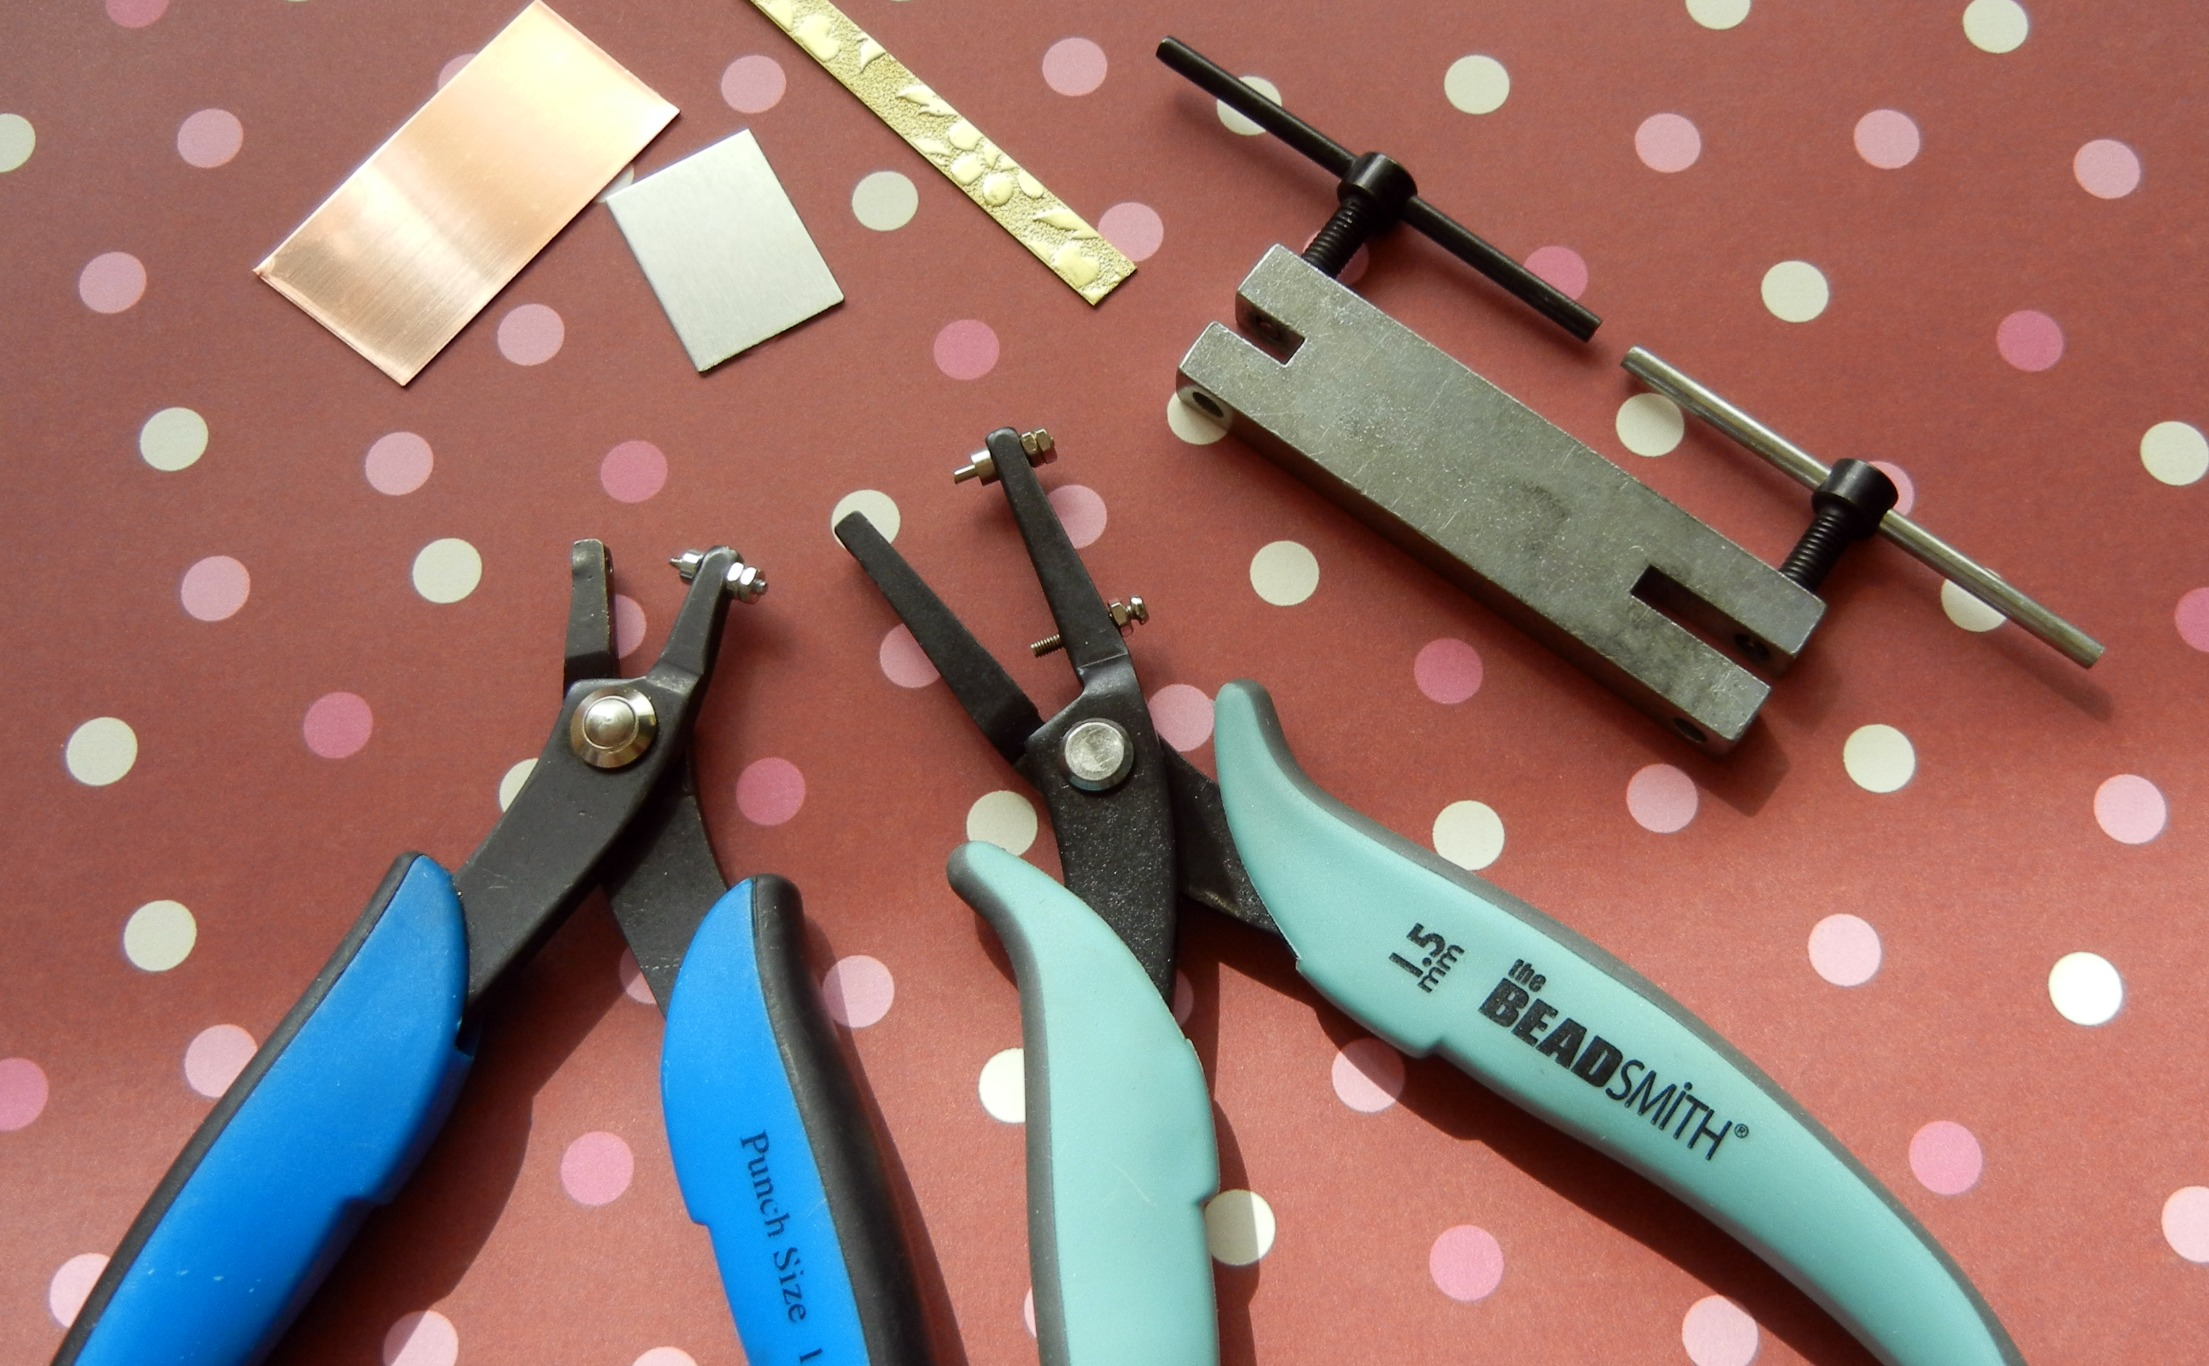 From left to right: EuroPunch pliers, BeadSmith punch pliers, screw-action hole punch